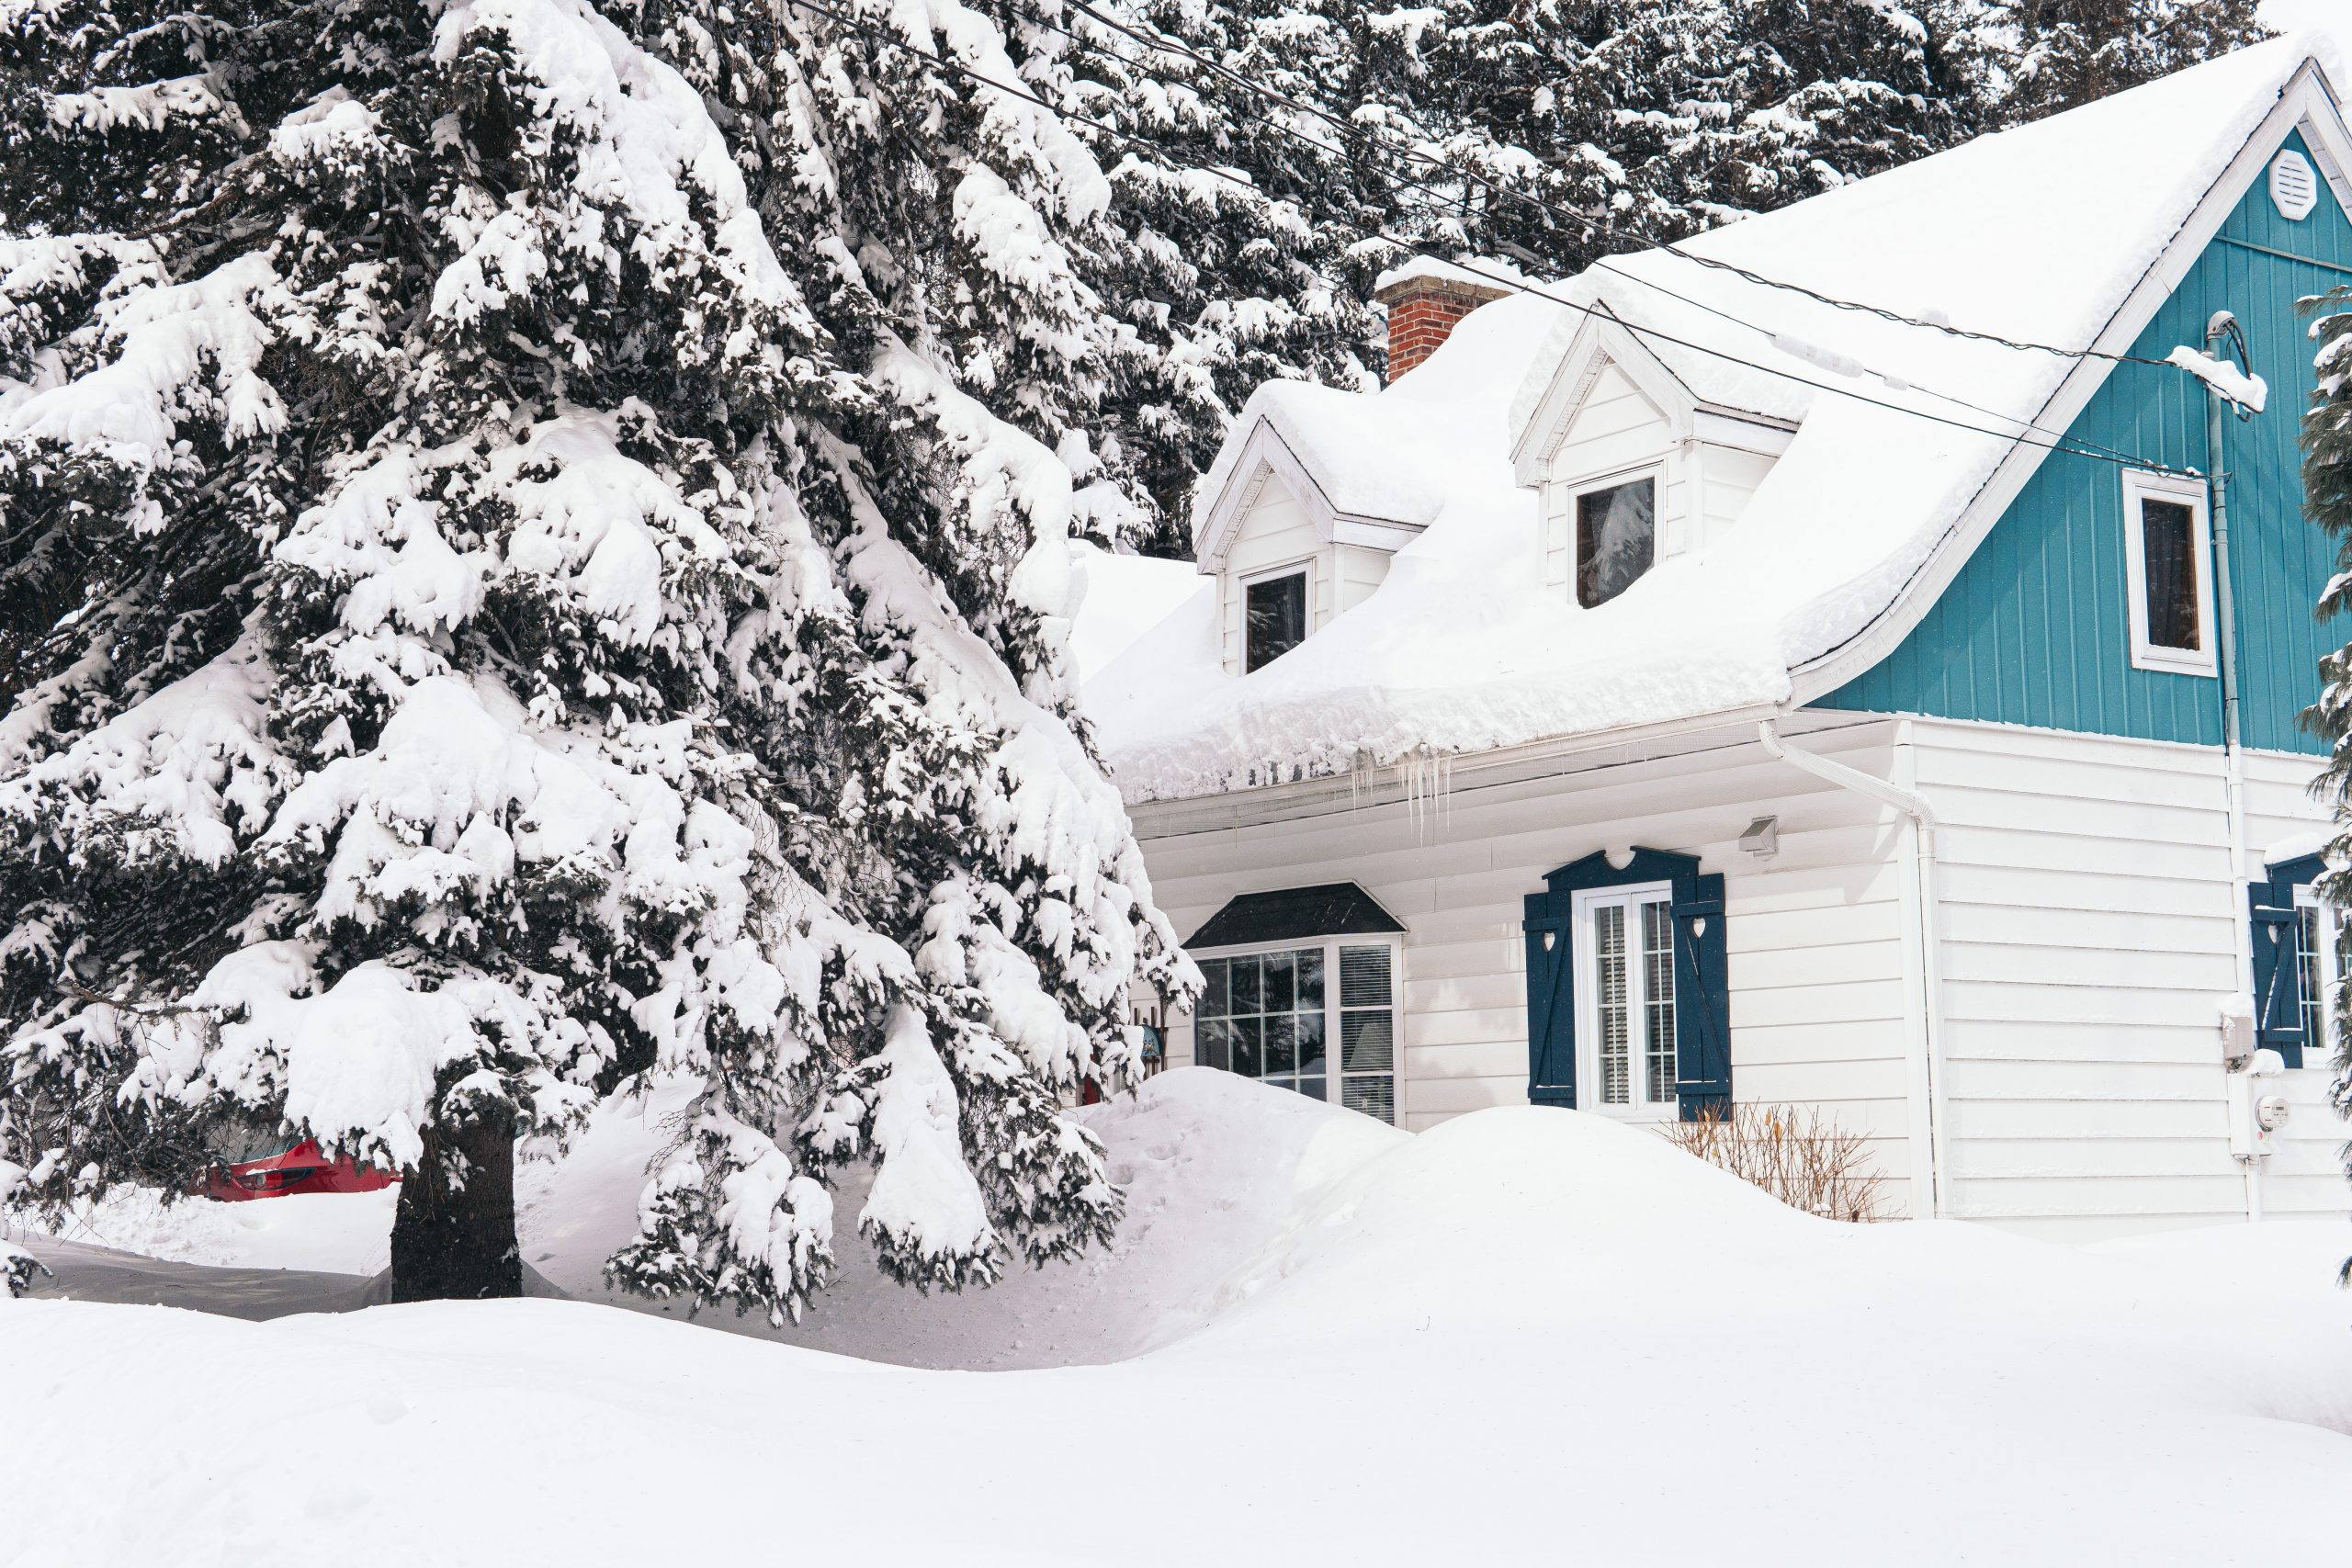 Prepare Homes For Frosty Days - Gildshire